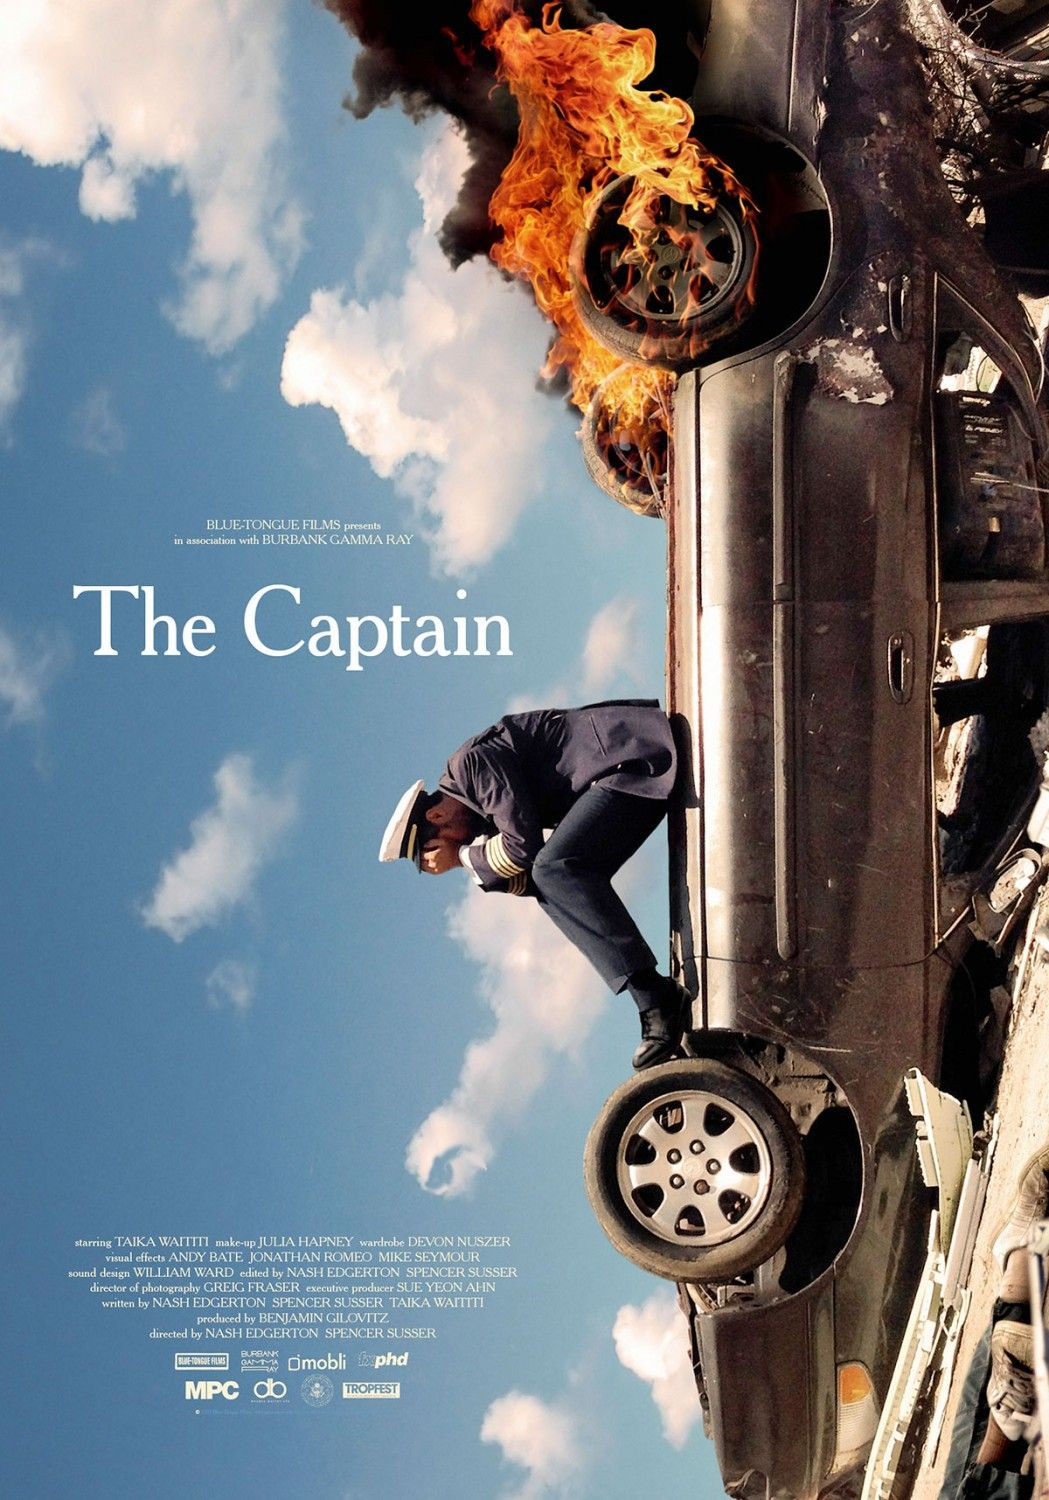 The Captain Jeremy Saunders With Images Indie Movie Posters Best Movie Posters Film Posters Cinema